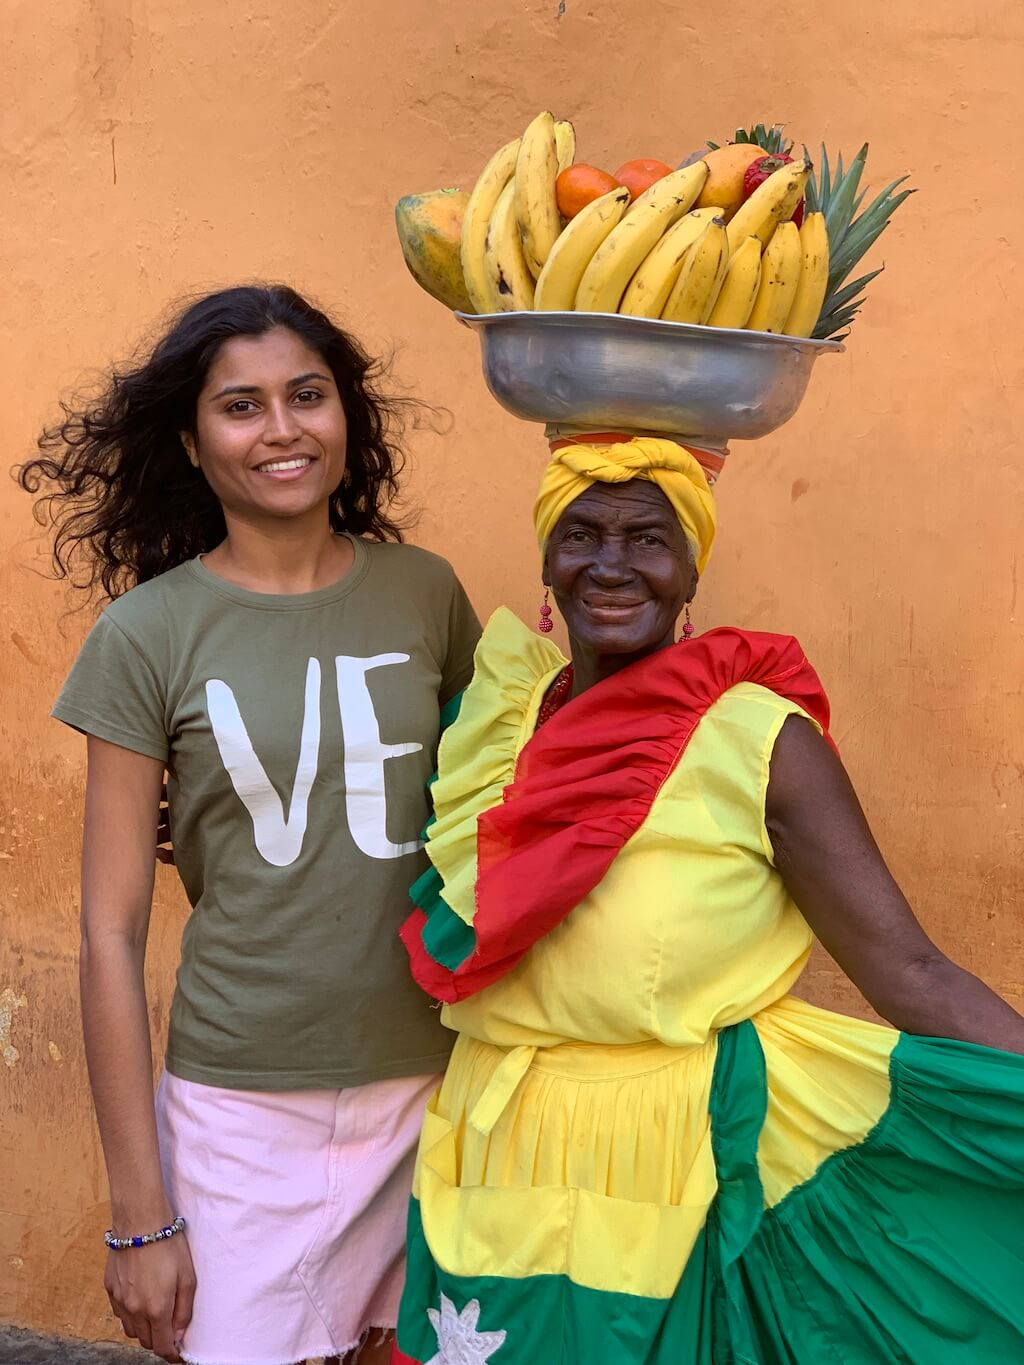 The kindest palenquera told me how she has dedicated her whole life to the fruit-selling tradition